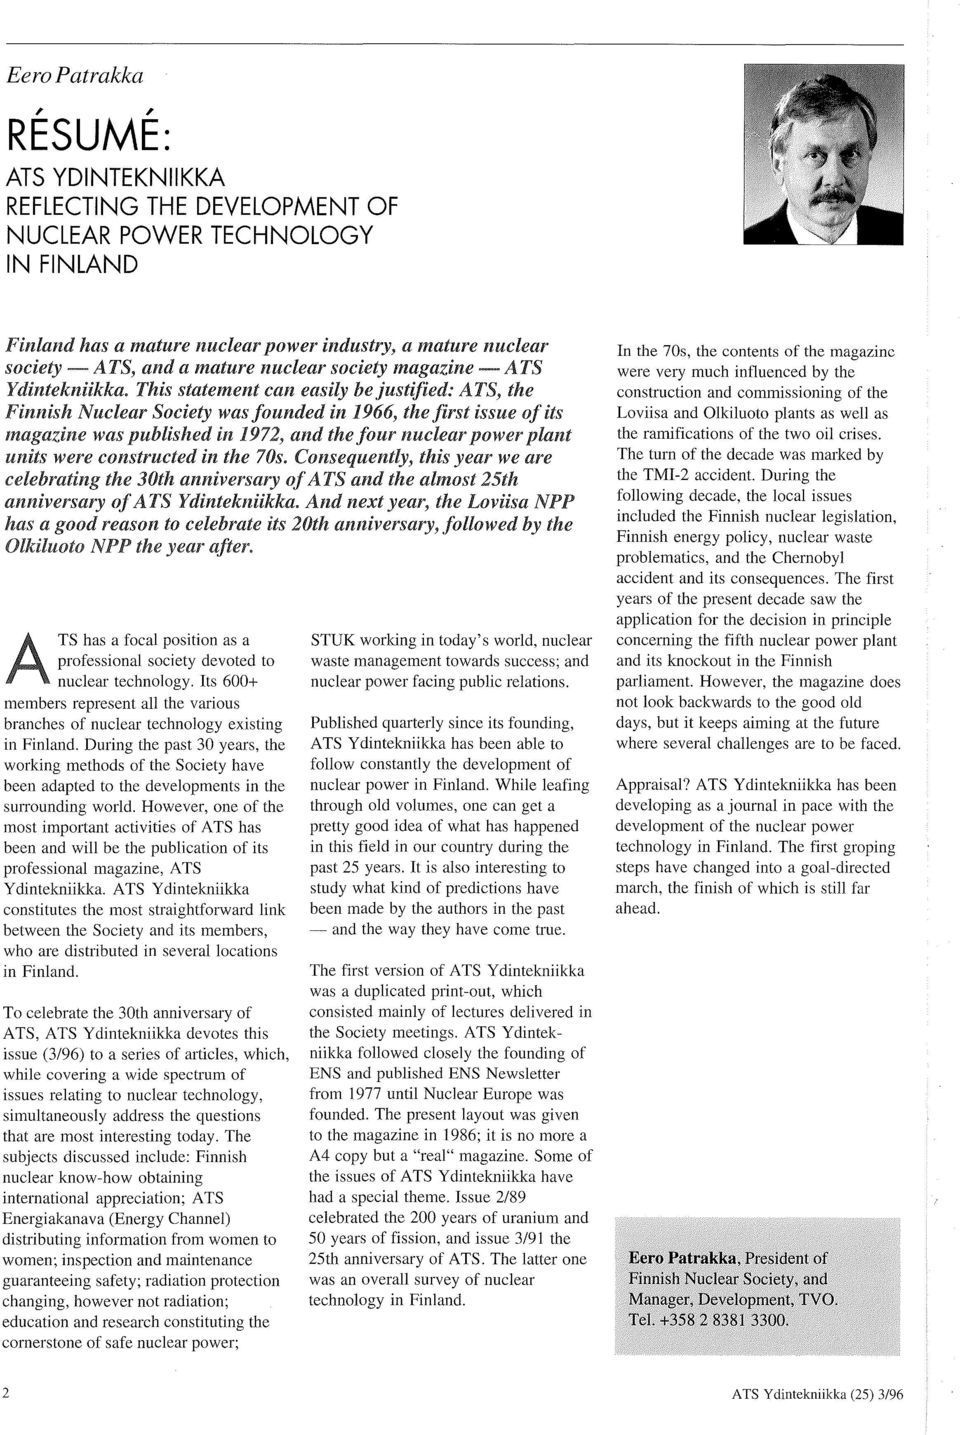 This statement can easily be justified: ATS, the Finnish Nuclear Society was founded in 1966, the first issue of its magazine was published in 1972, and the four nuclear power plant units were